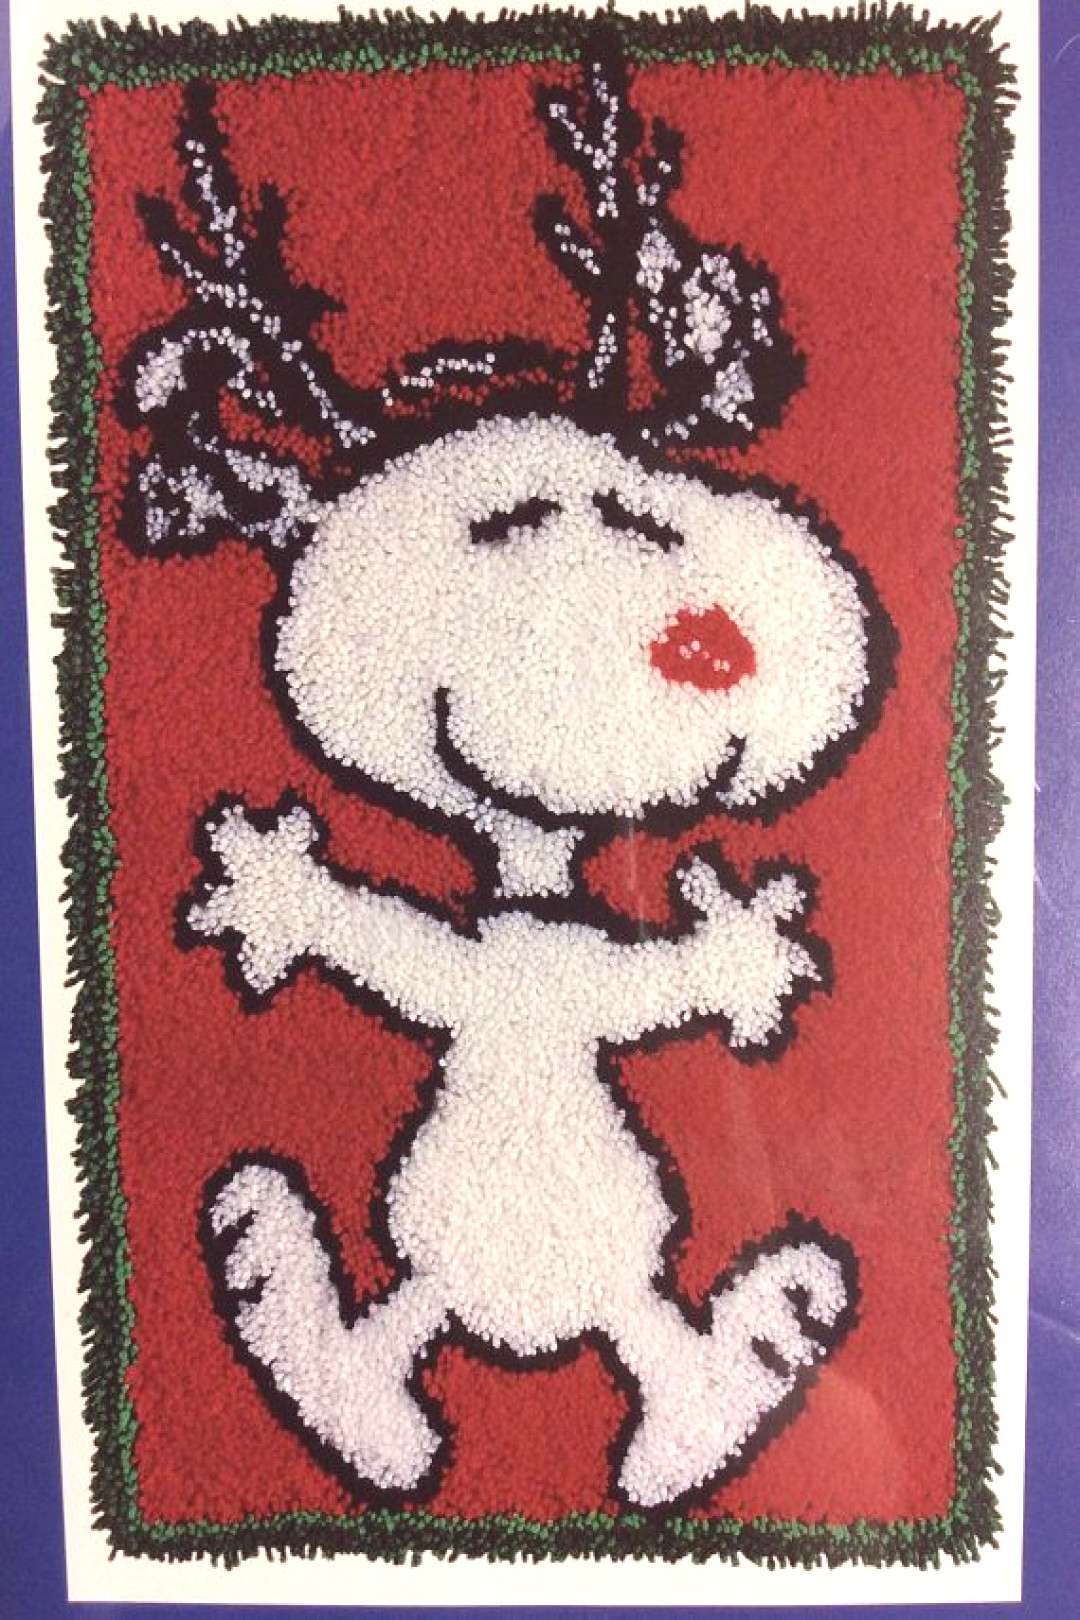 Reindeer Snoopy Latch Hook Kit J&P Coats Christmas Peanuts Hooked Wall Hanging Rug Kit Acryli... Re